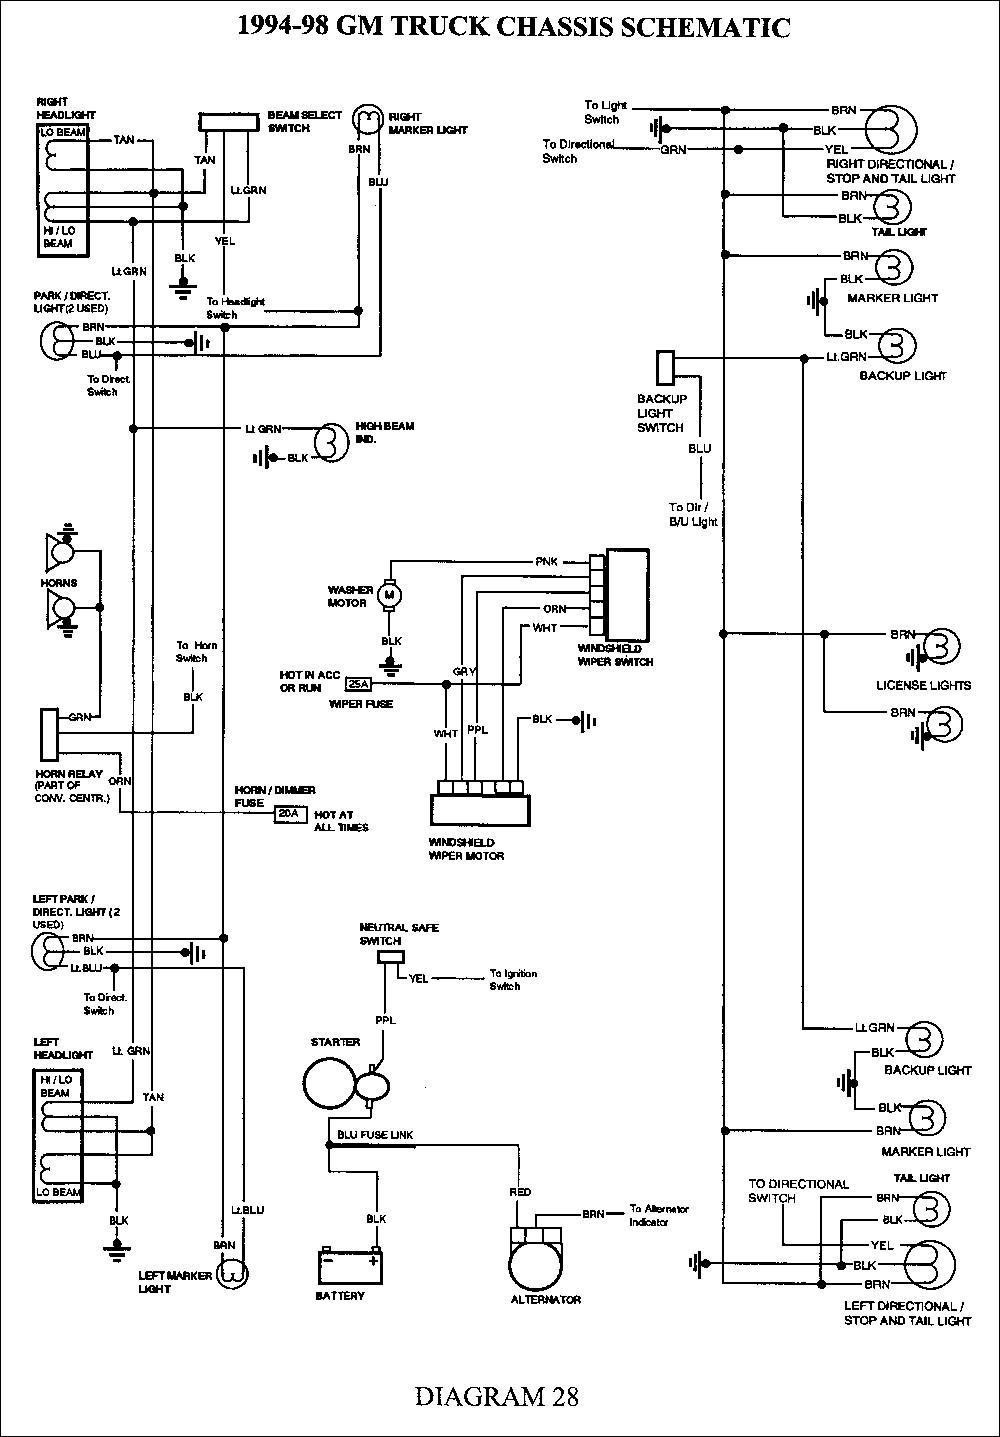 1997 S10 Turn Signal Wiring Diagram